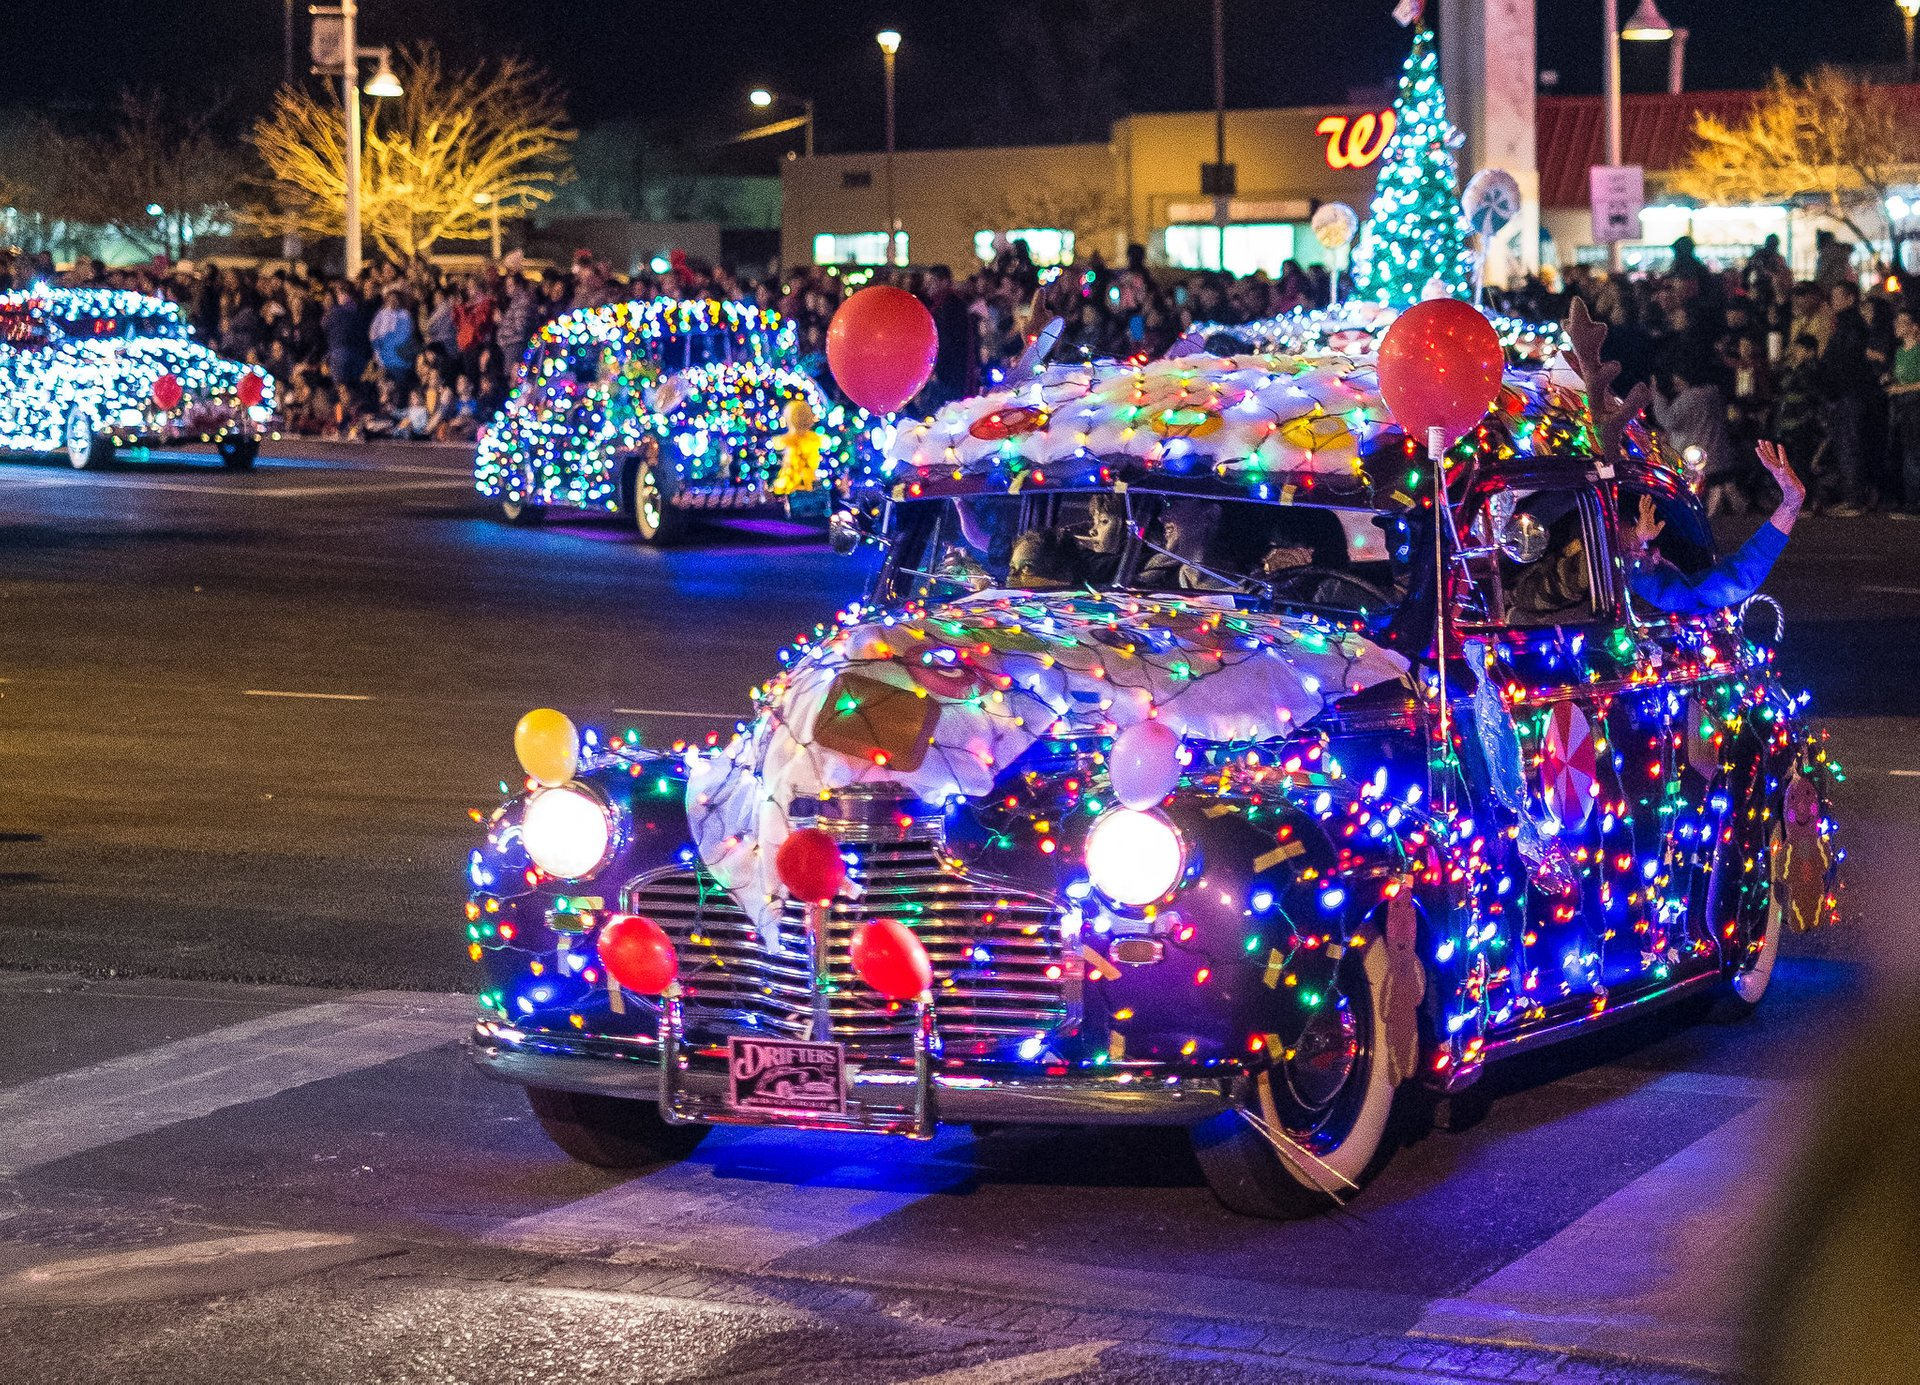 Twinkle Light Parade in Albuquerque in New Mexico 2020 - Best Time